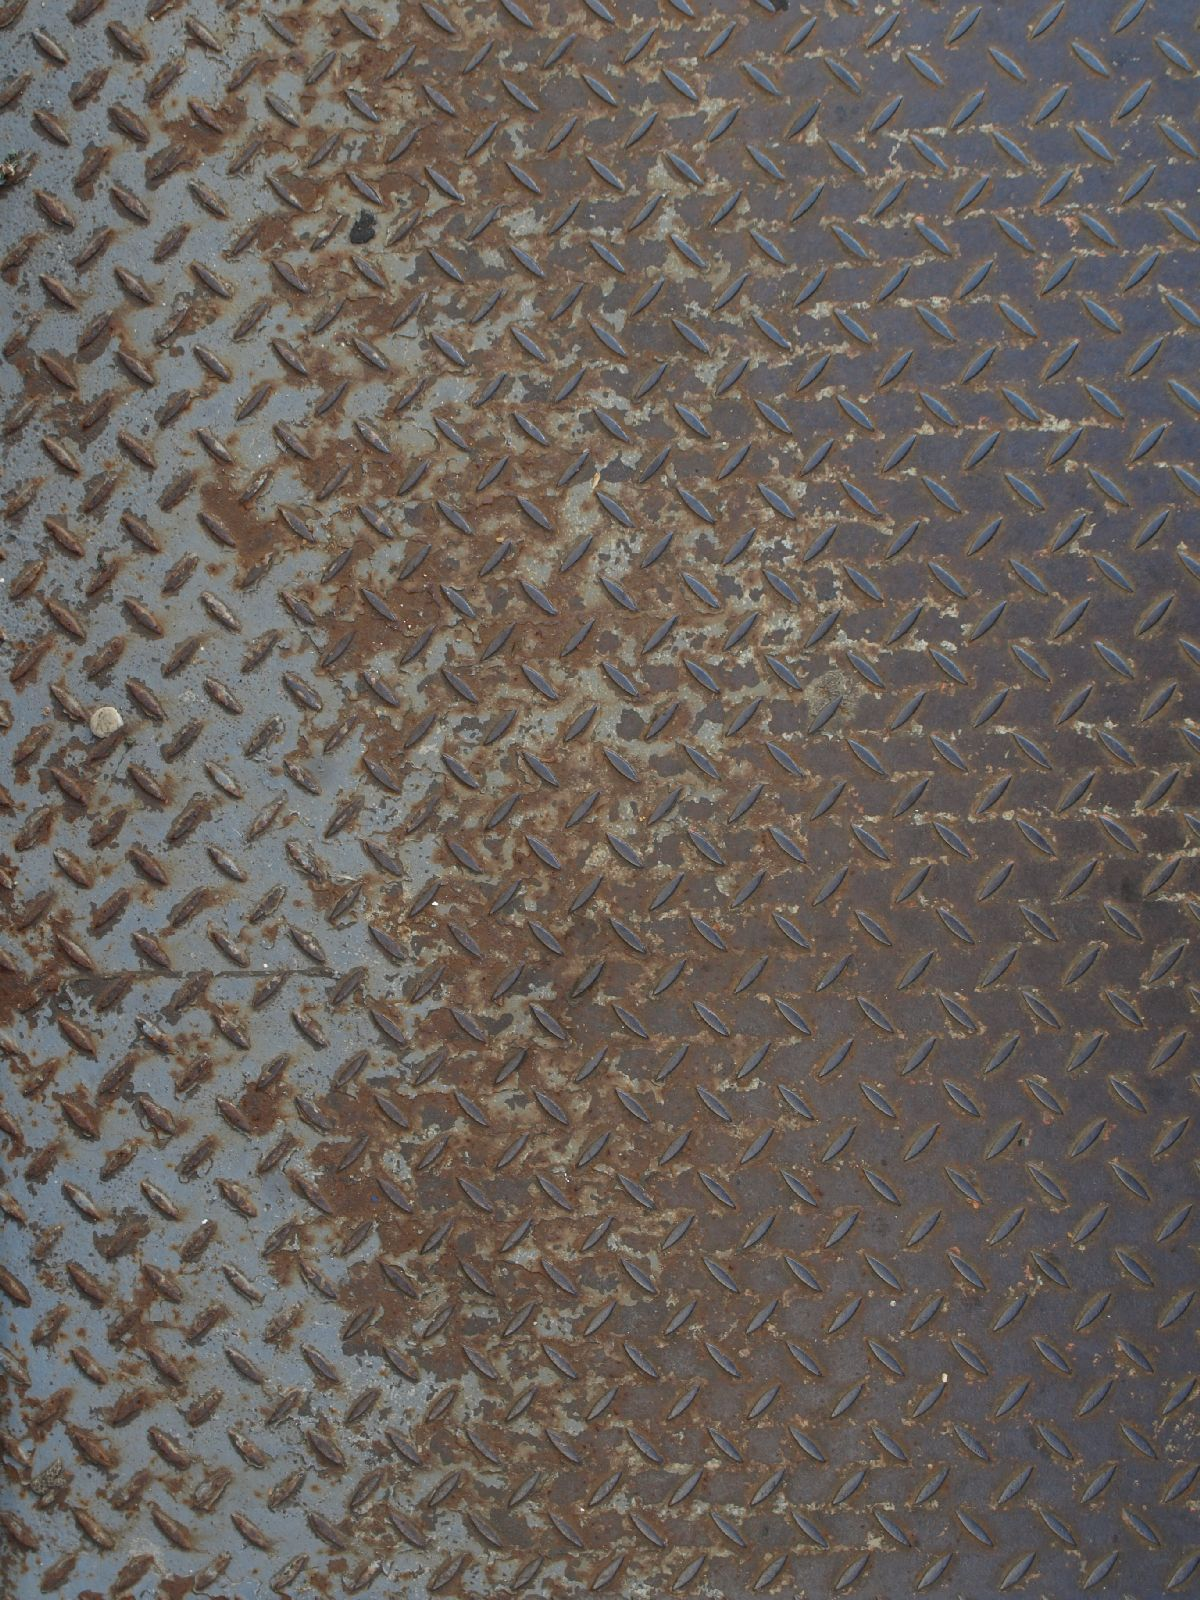 Metall-rostig-Rost_Textur_A_P6223615